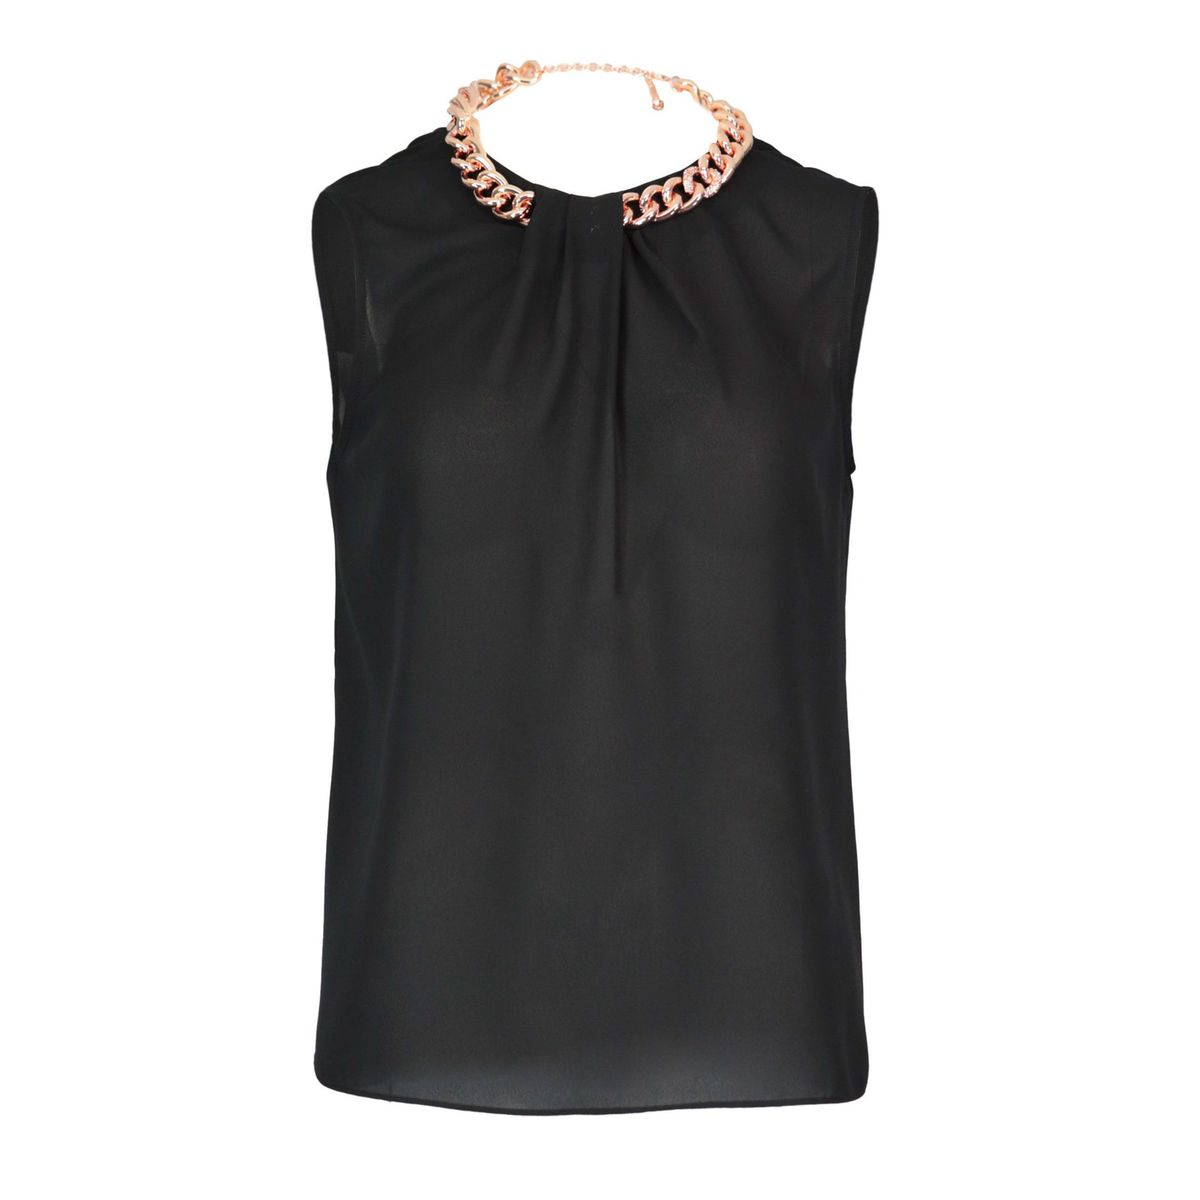 Folgore georgette tank top with chain Black Nenette